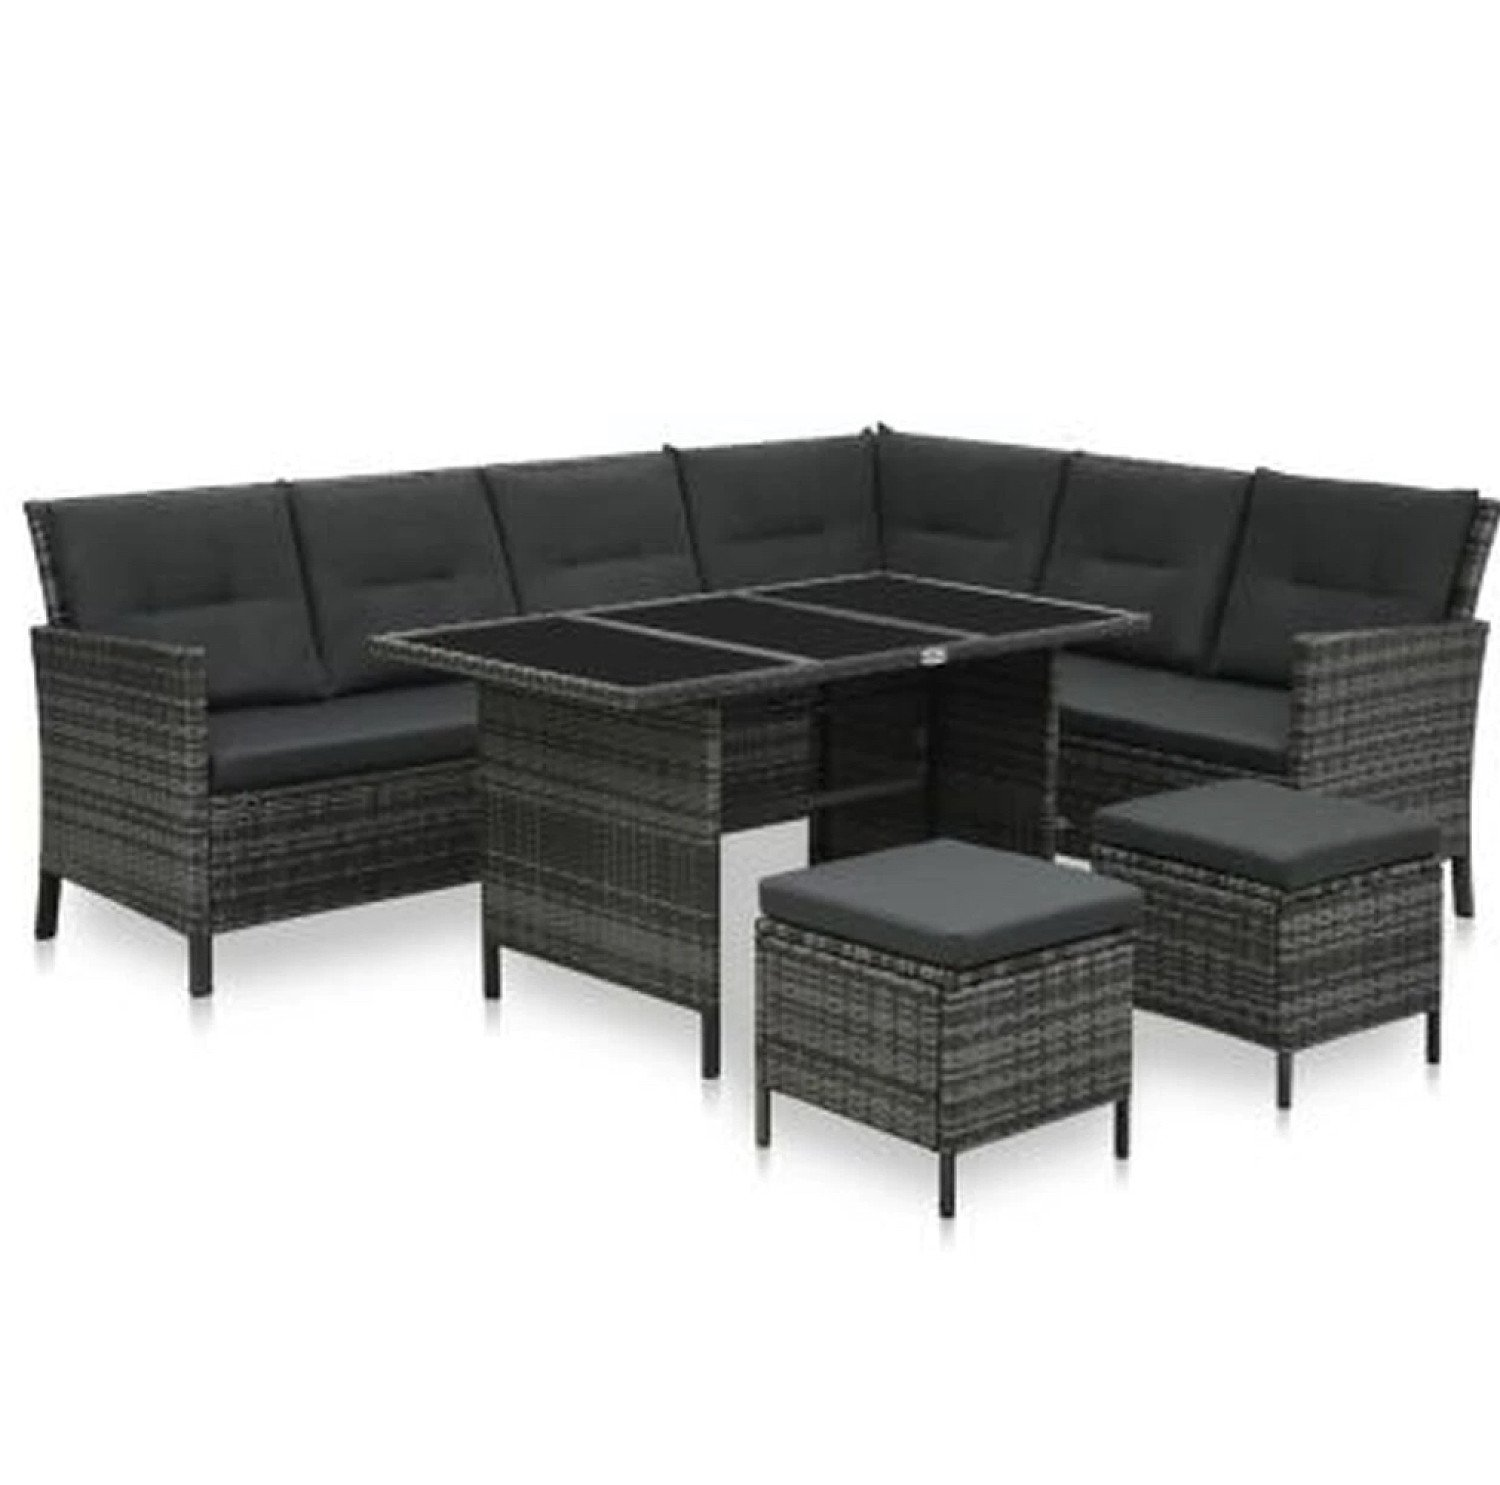 4 Piece Lounge Set Poly Rattan Grey - Grey Cushions - free delivery